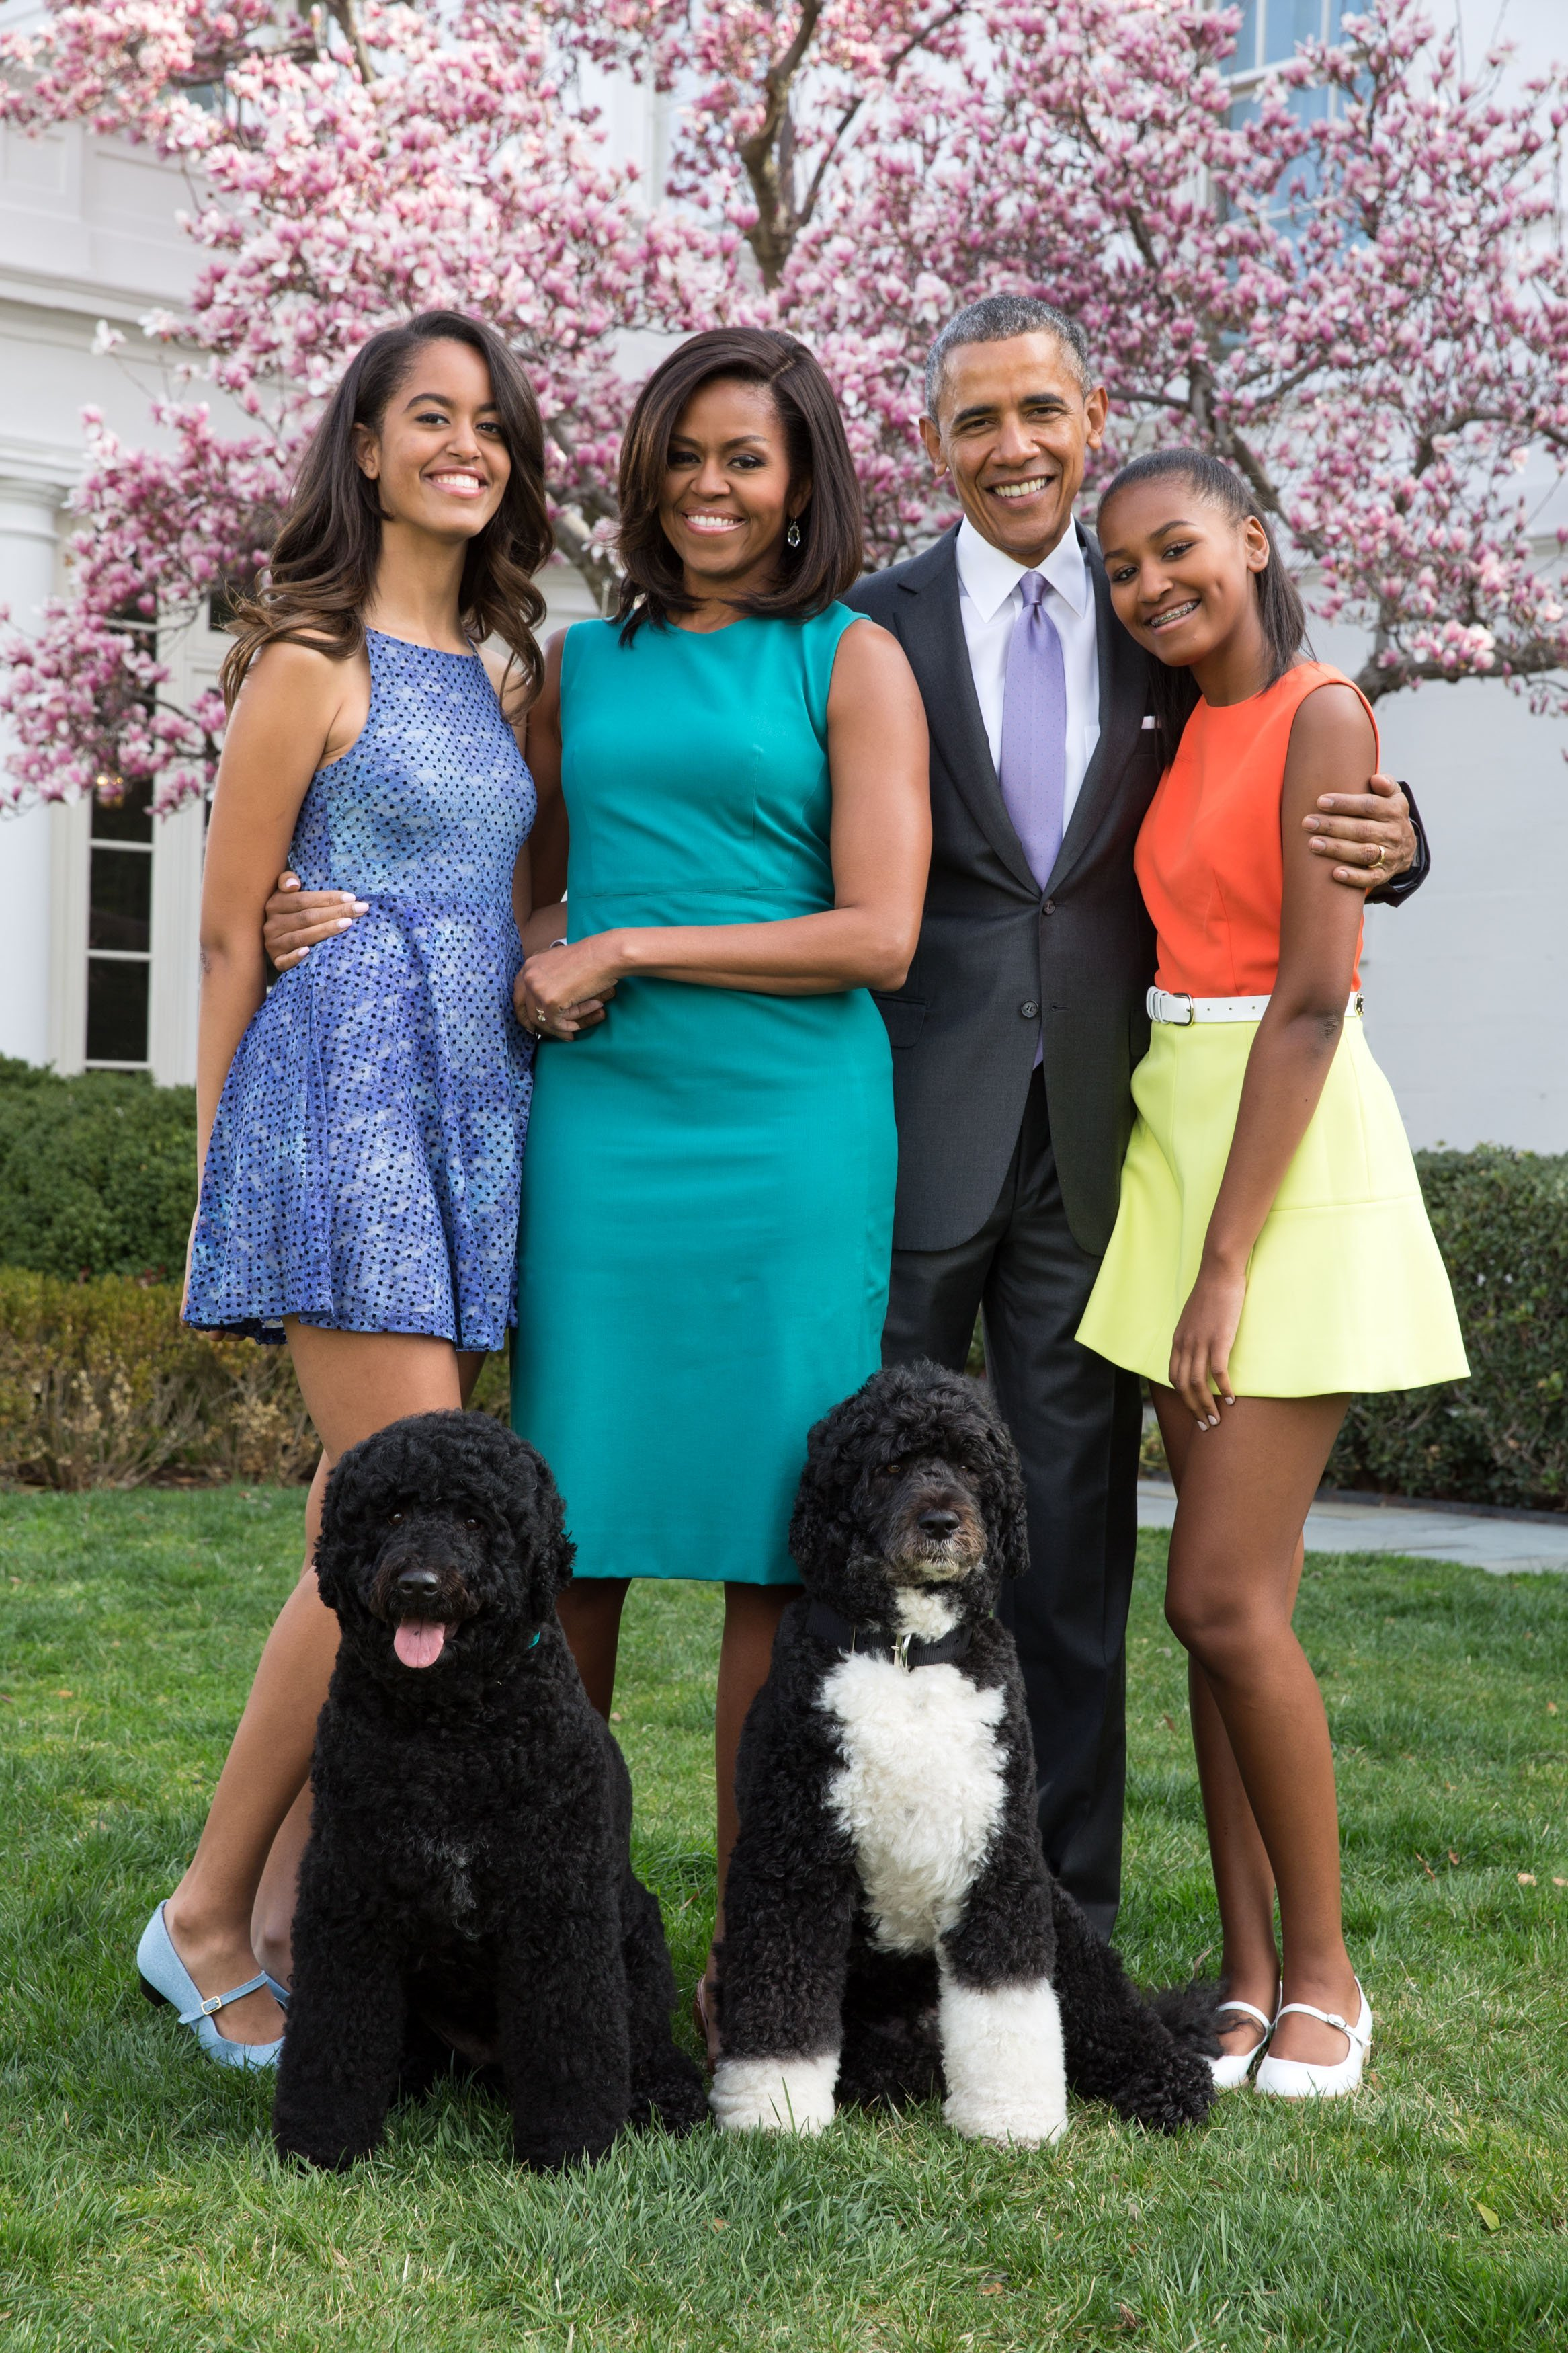 U.S. President Barack Obama, First Lady Michelle Obama, and daughters Malia (L) and Sasha (R) pose for a family portrait with their pets Bo and Sunny in the Rose Garden of the White House on Easter Sunday, April 5, 2015, in Washington, DC. | Source: Getty Images.